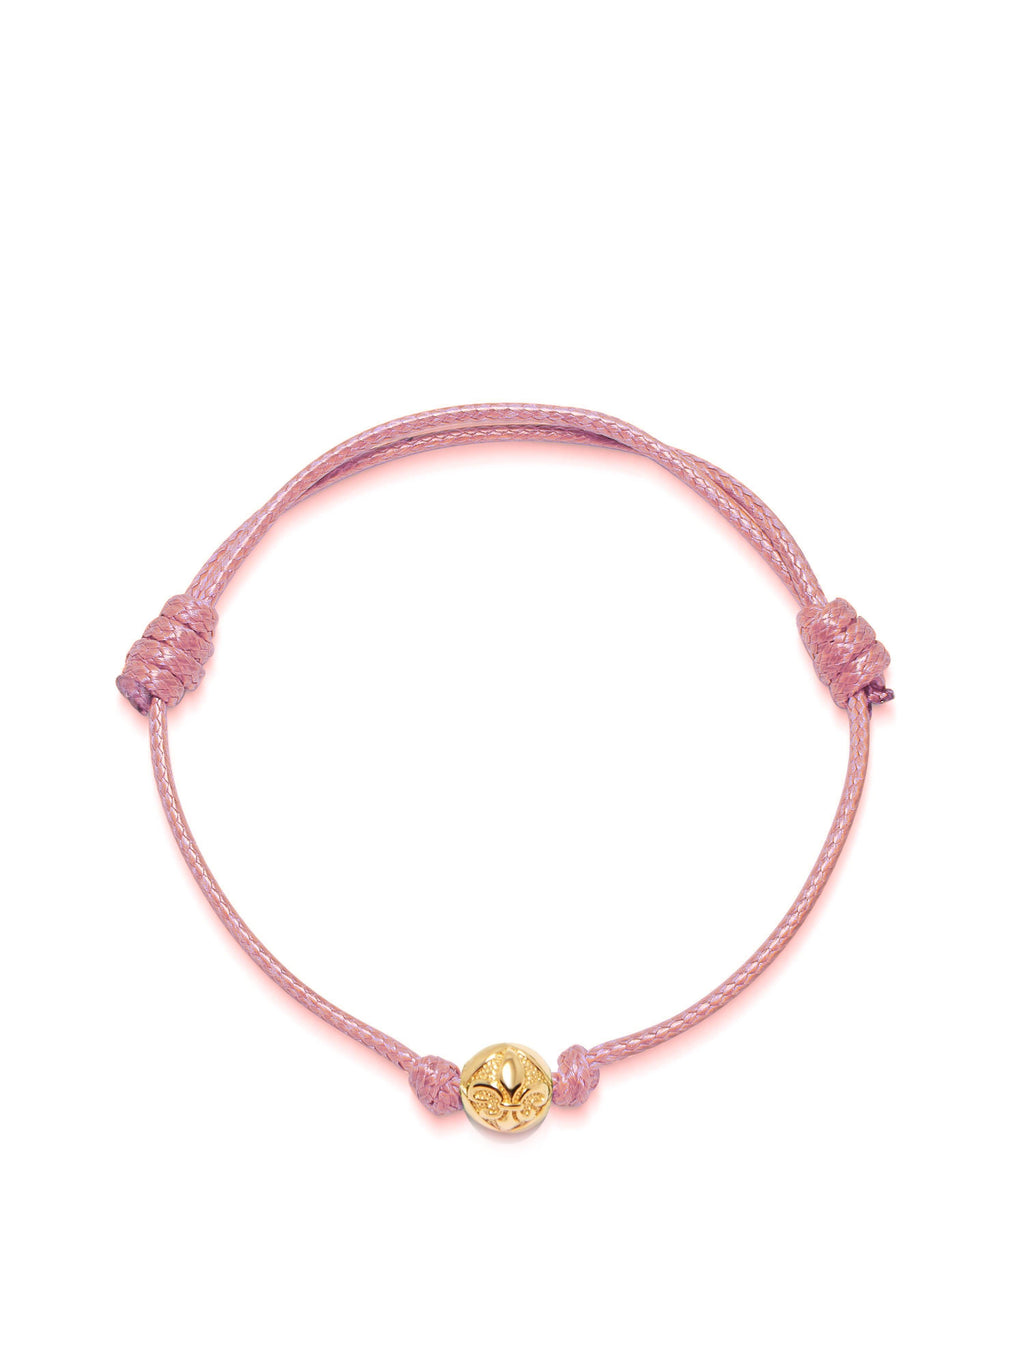 Women's Pink String Bracelet with Gold